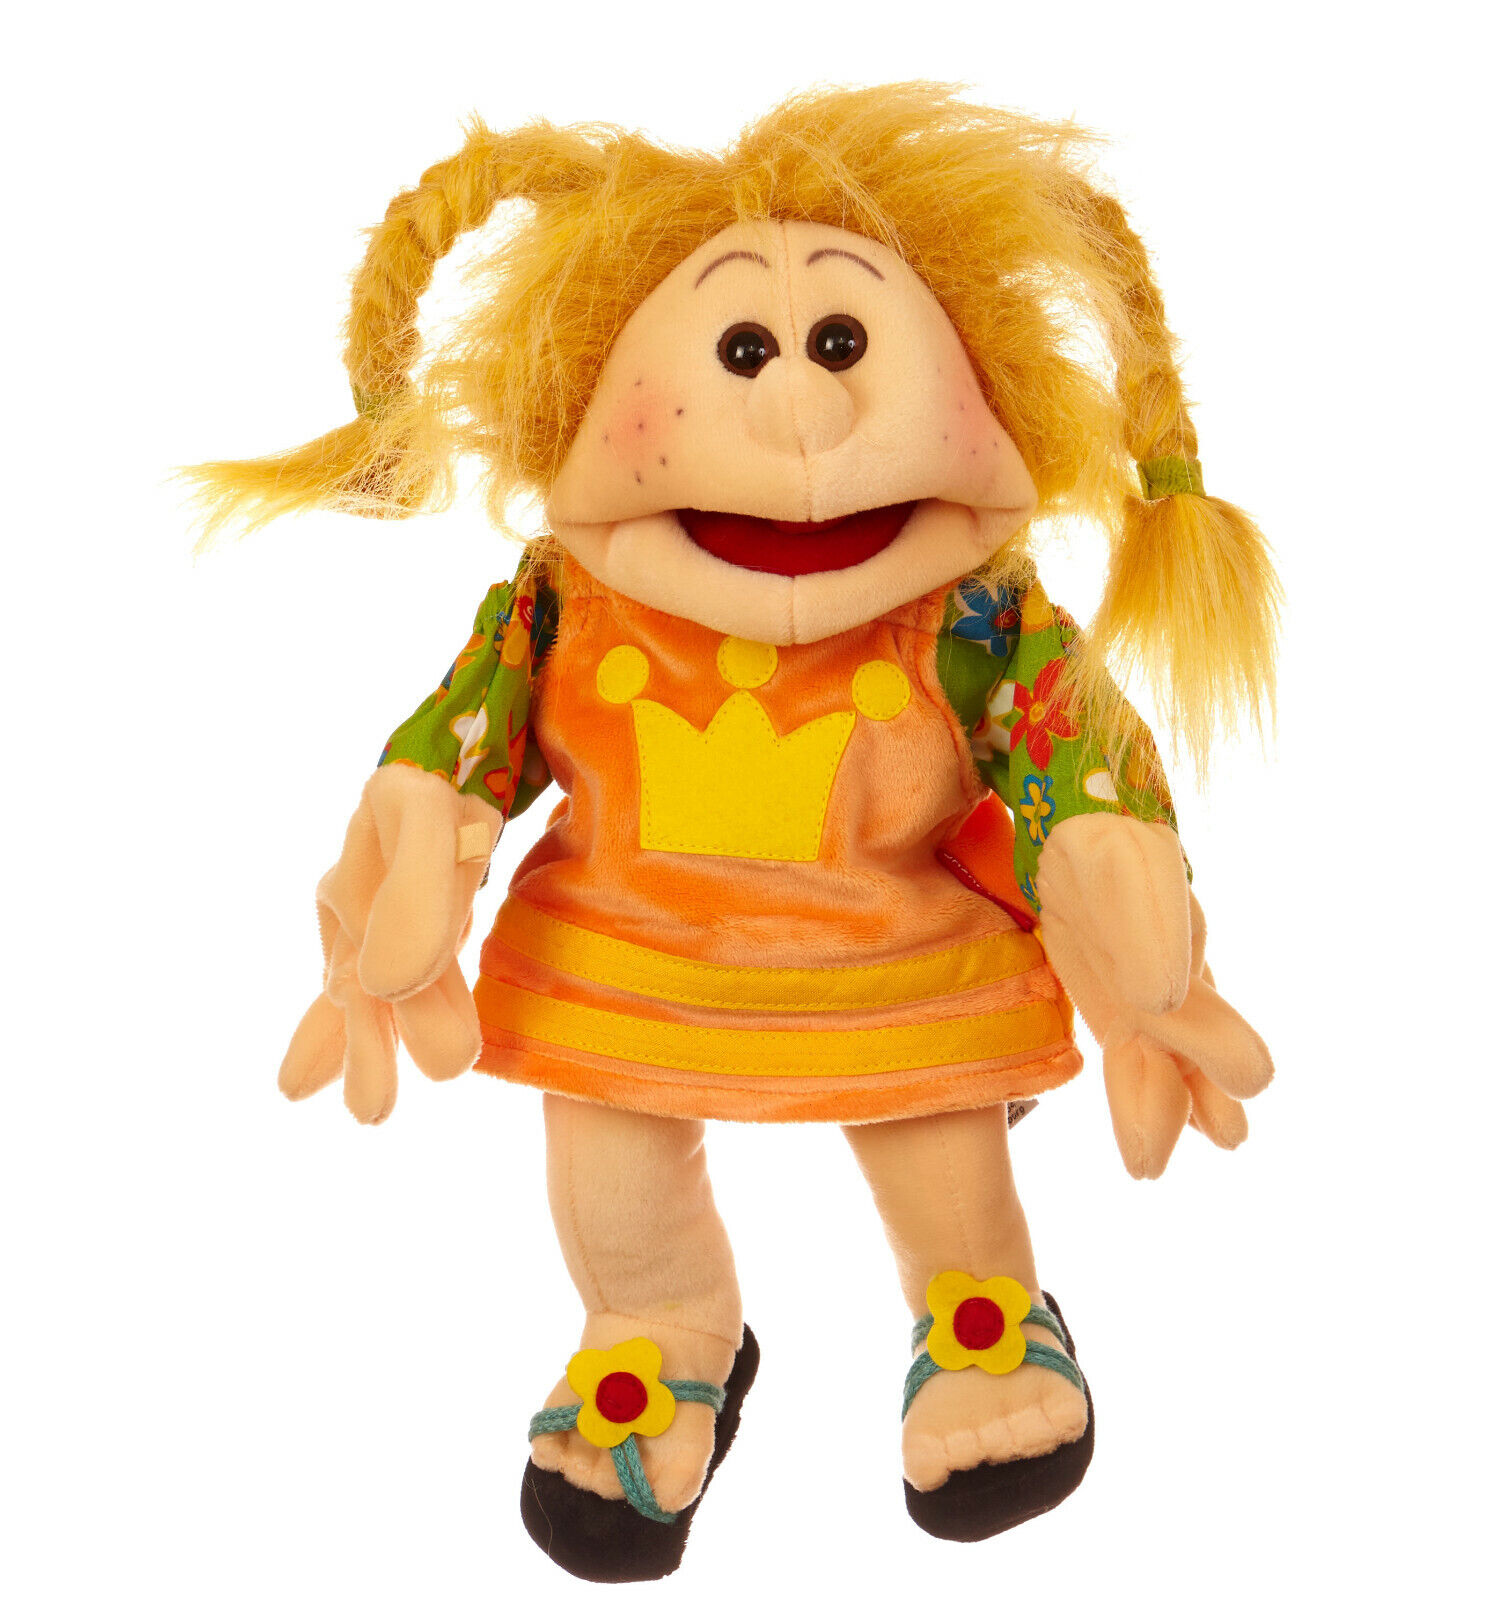 Living Puppets W241 Jennilein Hand Puppet 35 cm Sandals and Braided Pigtails